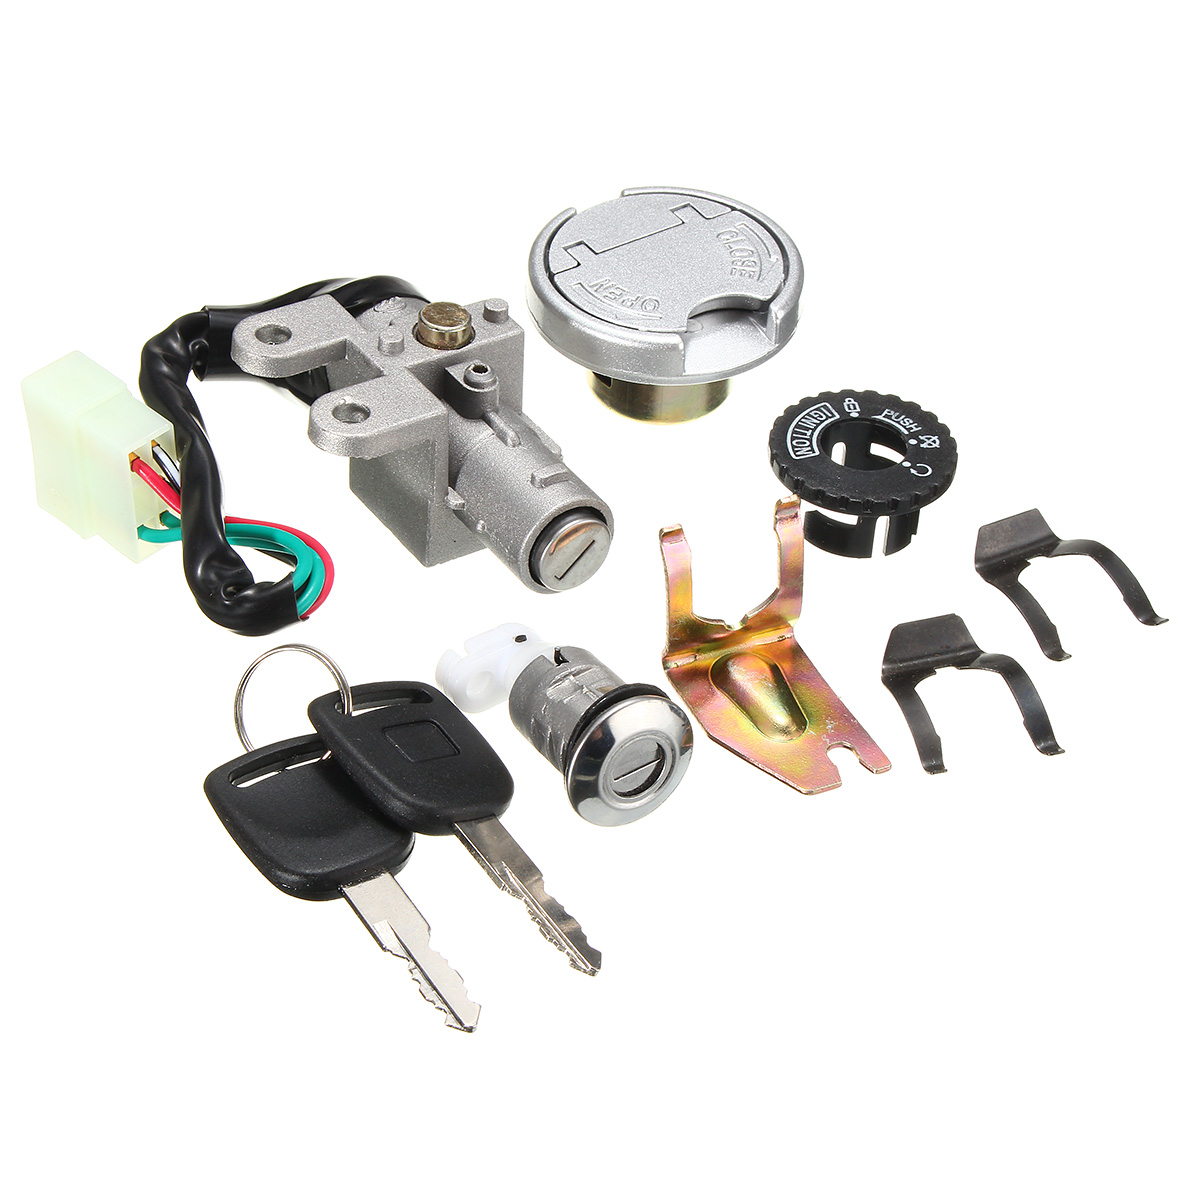 Unverisal Motorcycle Ignition Lock…